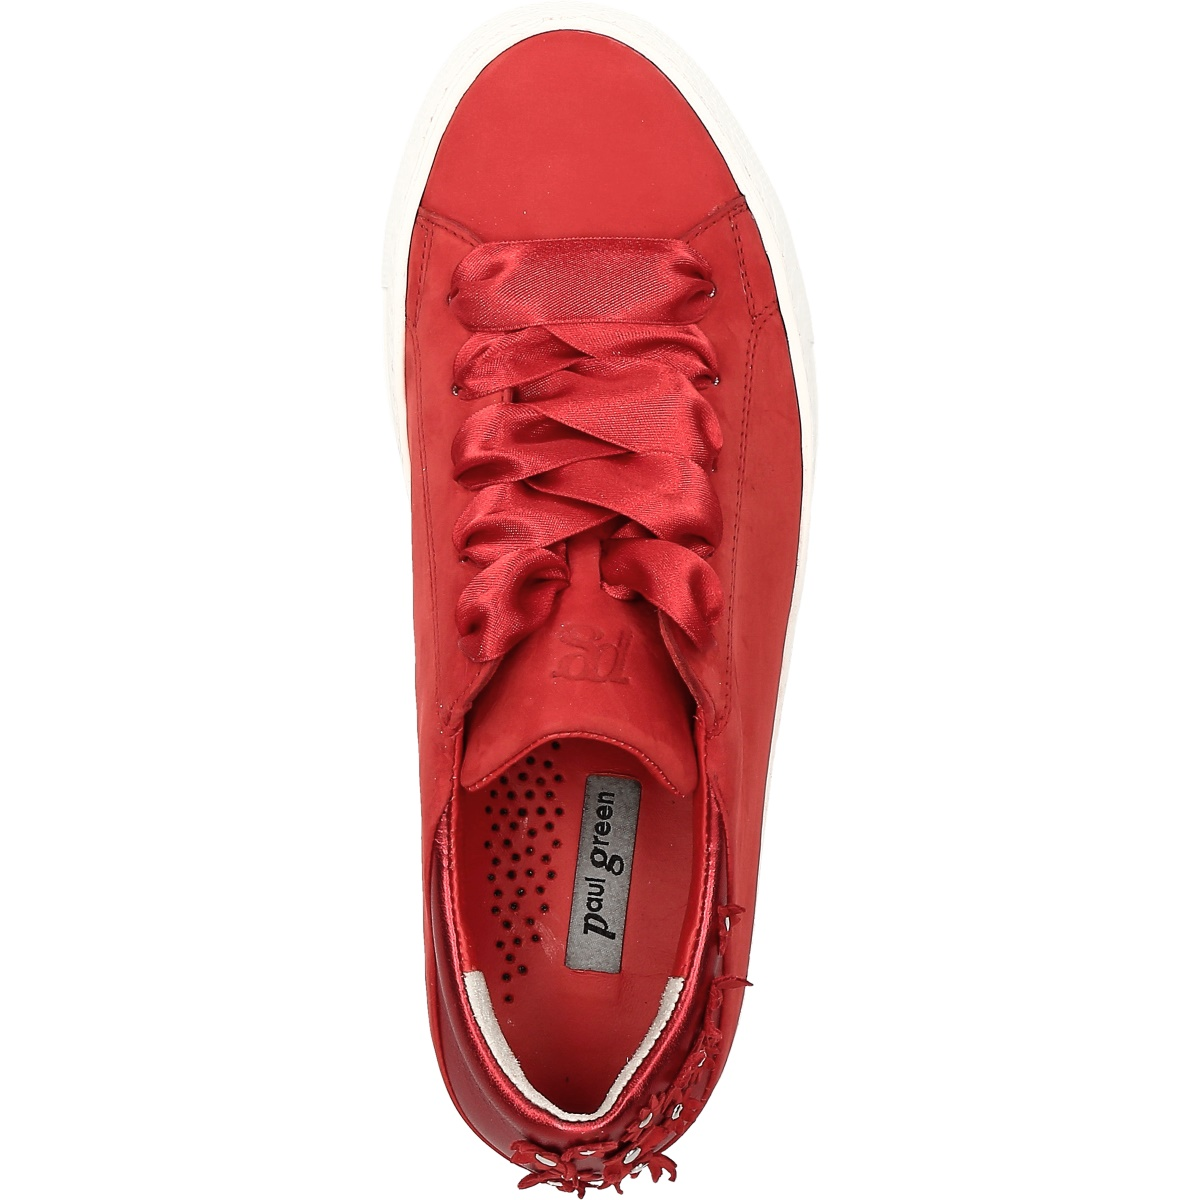 Paul Green 4626 034 Women's shoes Lace ups buy shoes at our